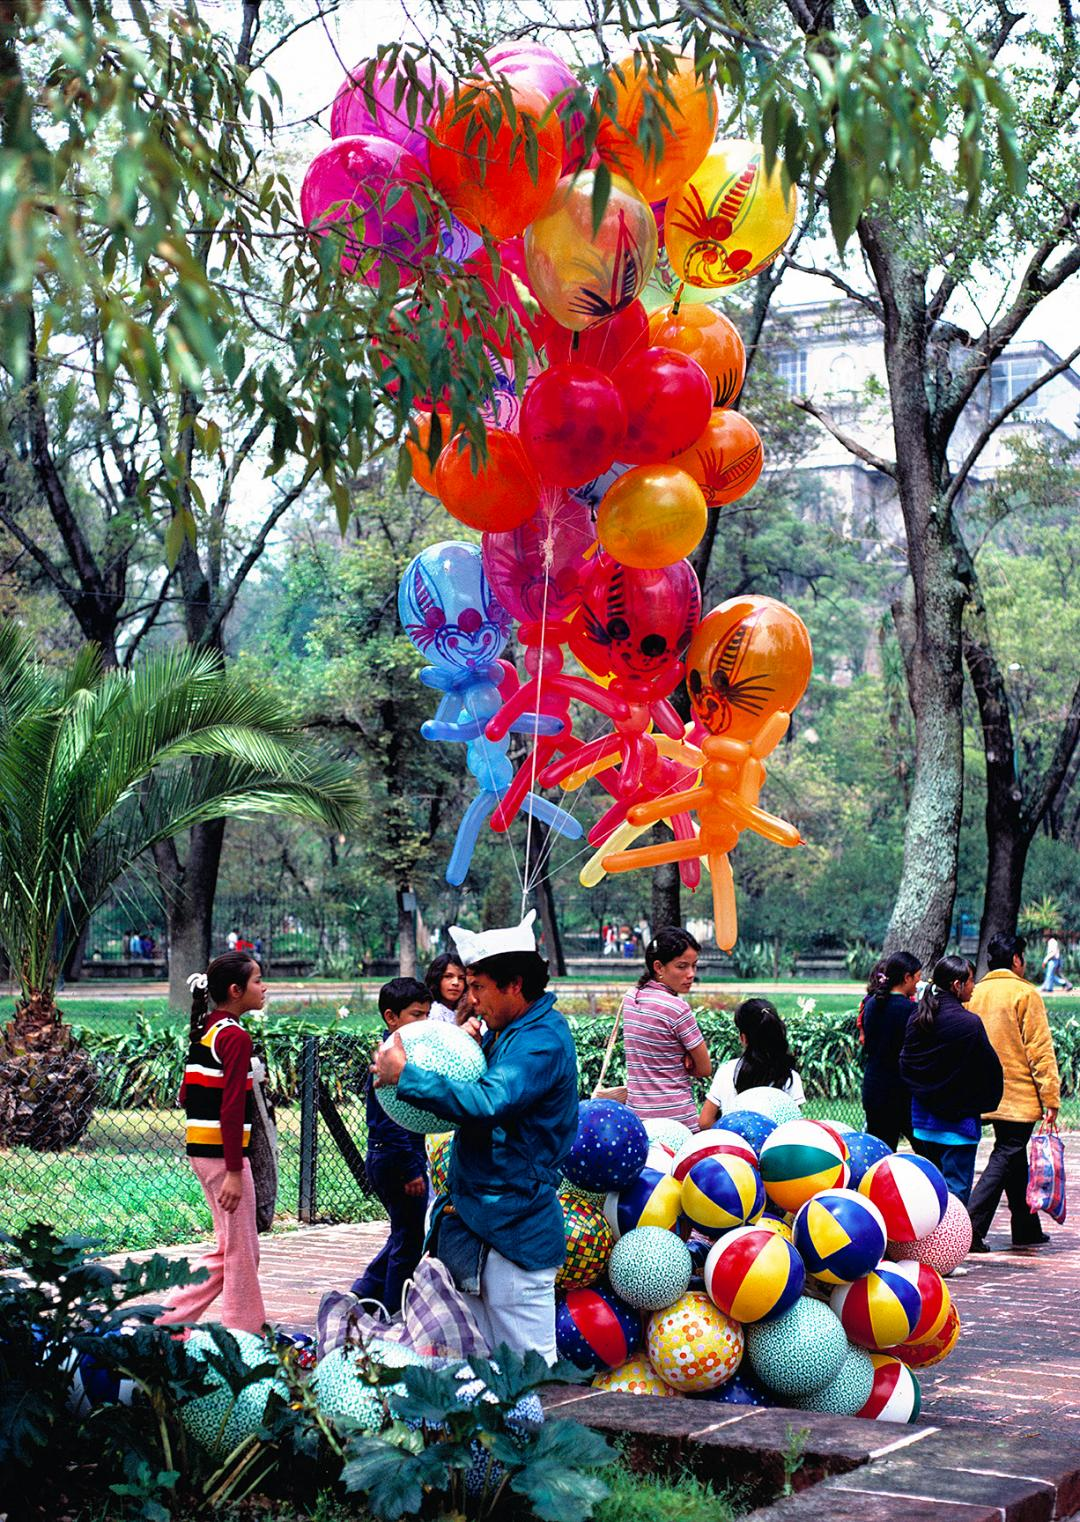 Balloon Man in Chapultapec Park, Mexico